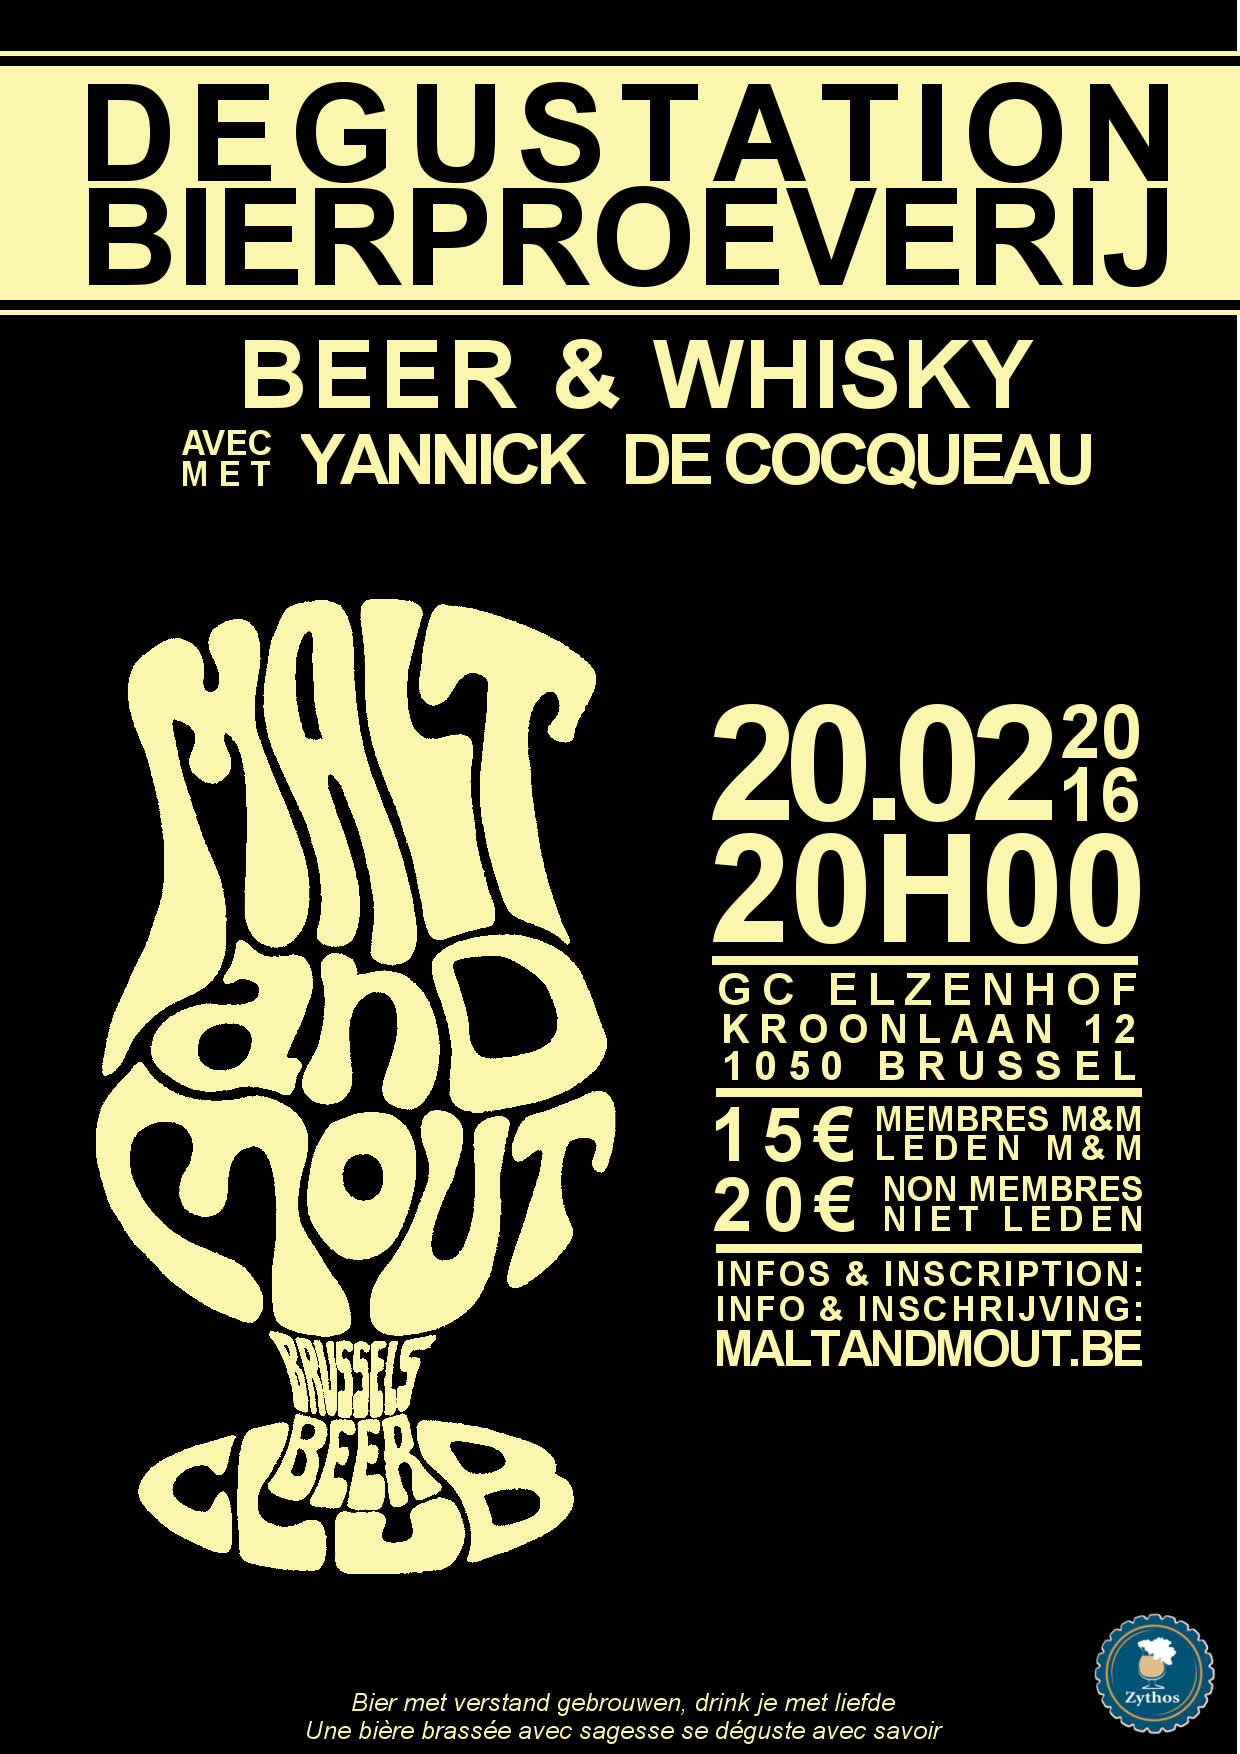 Beer & Whisky